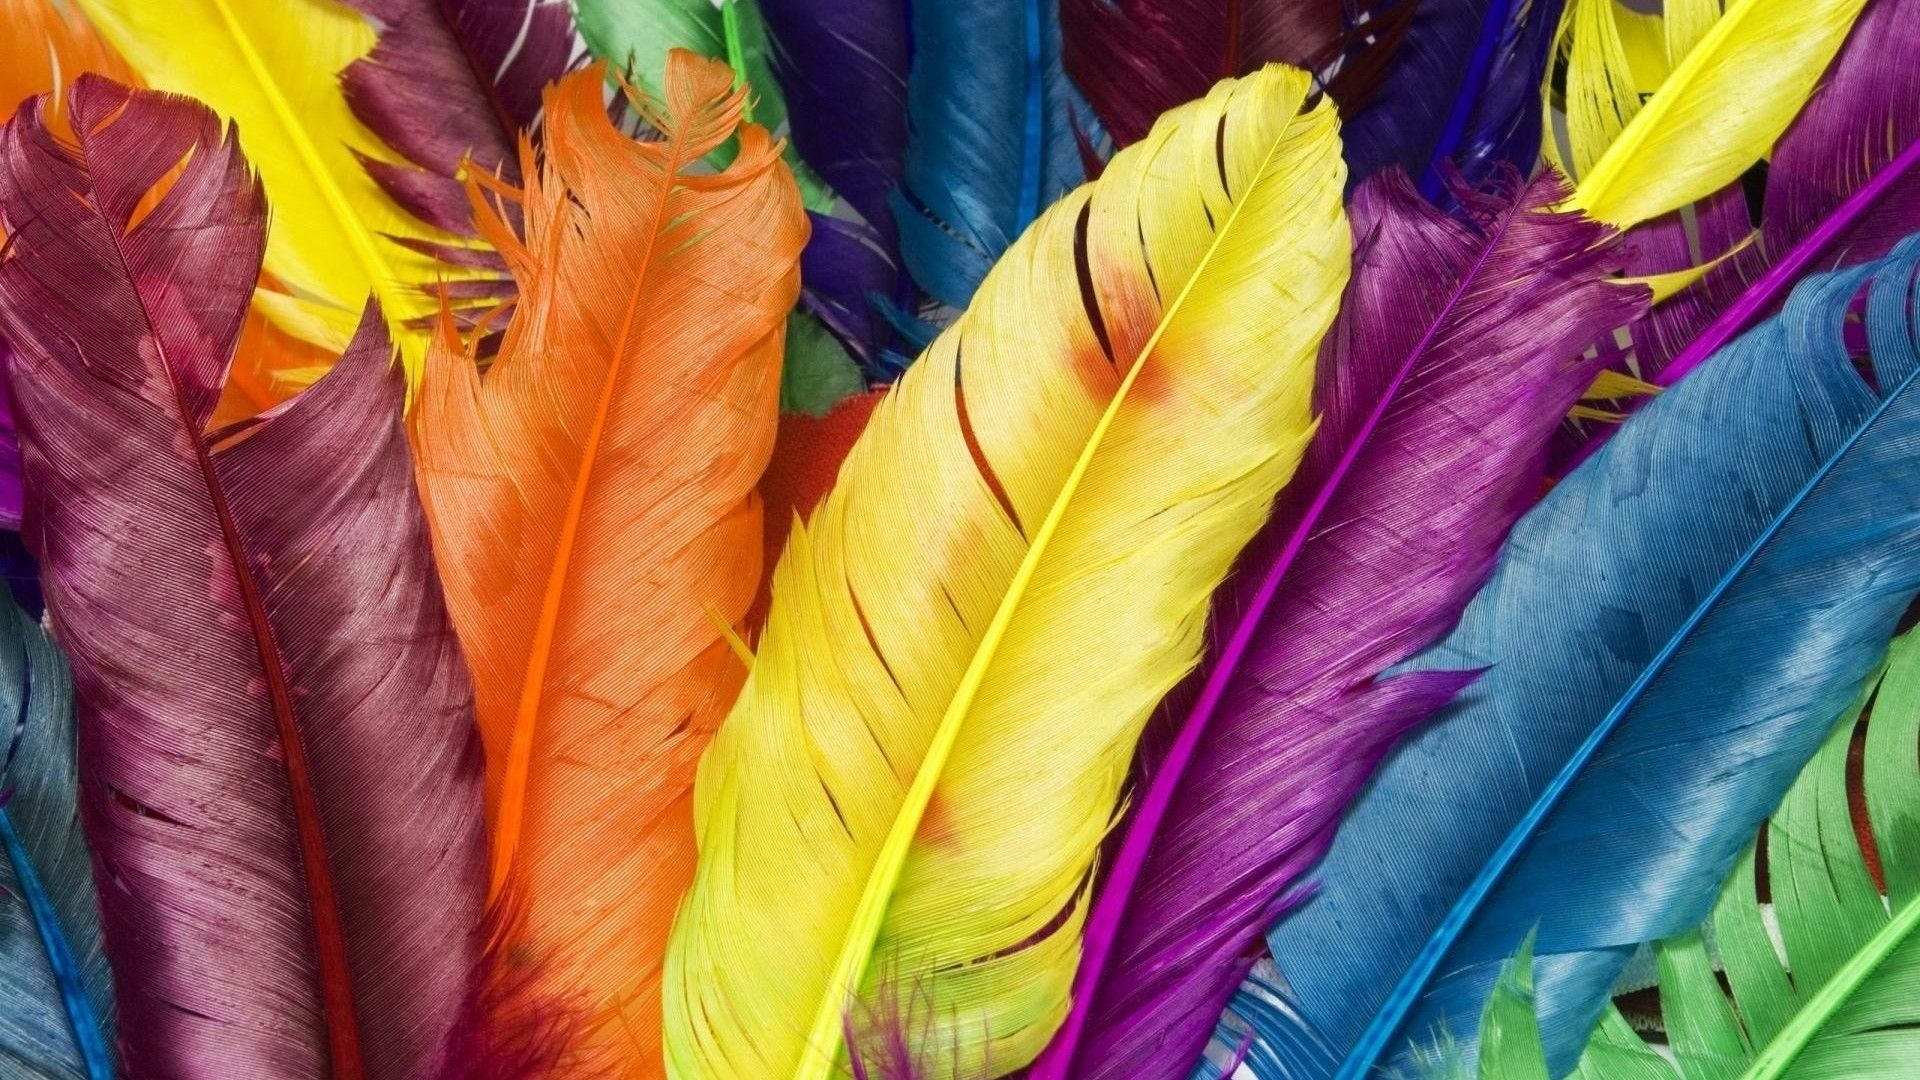 Feather Bloom wallpaper for computer